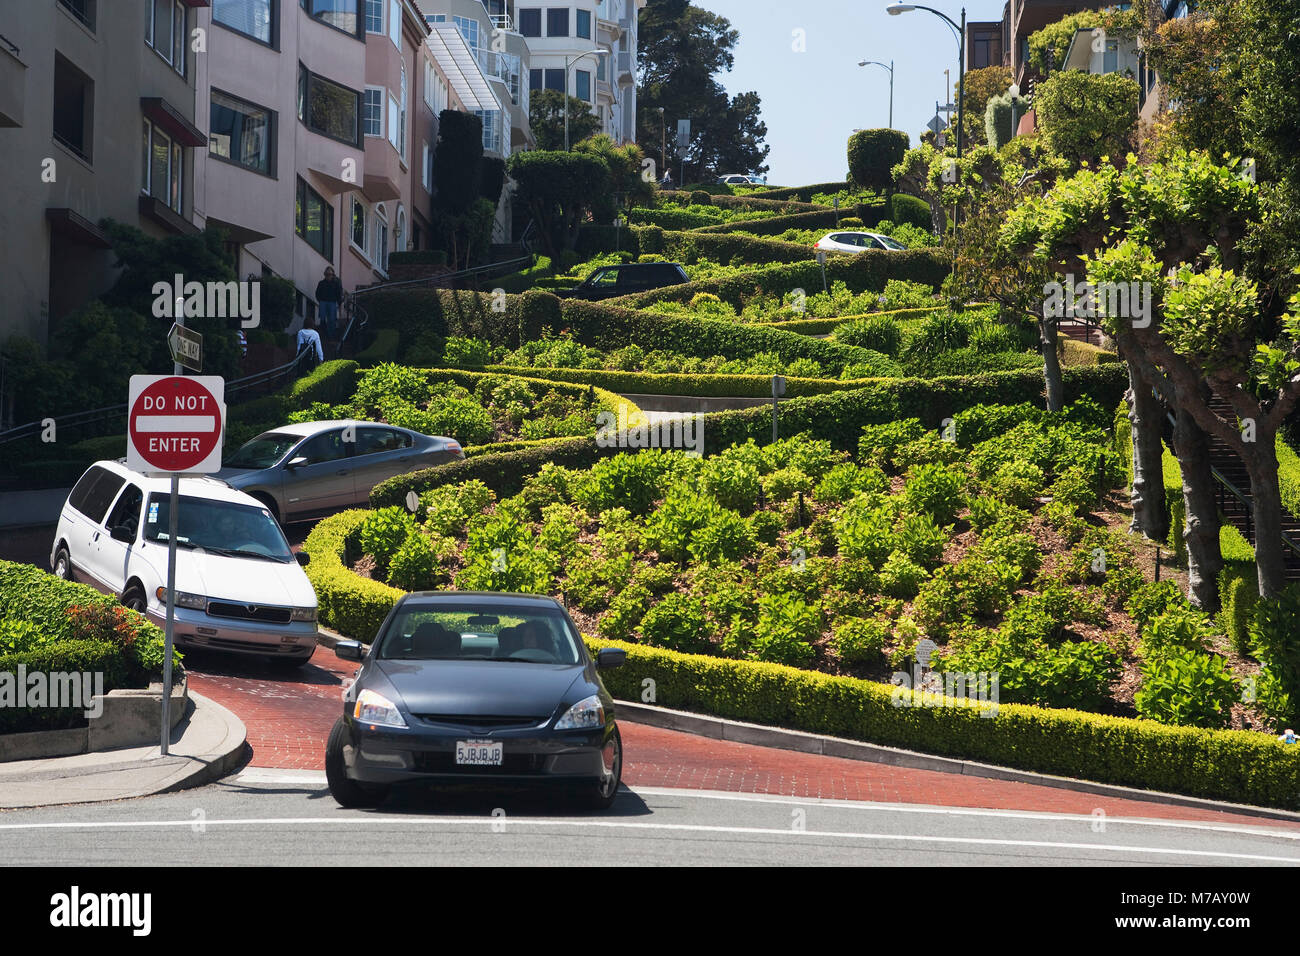 Cars on the road street, Lombard Street, San Francisco, California, USA - Stock Image